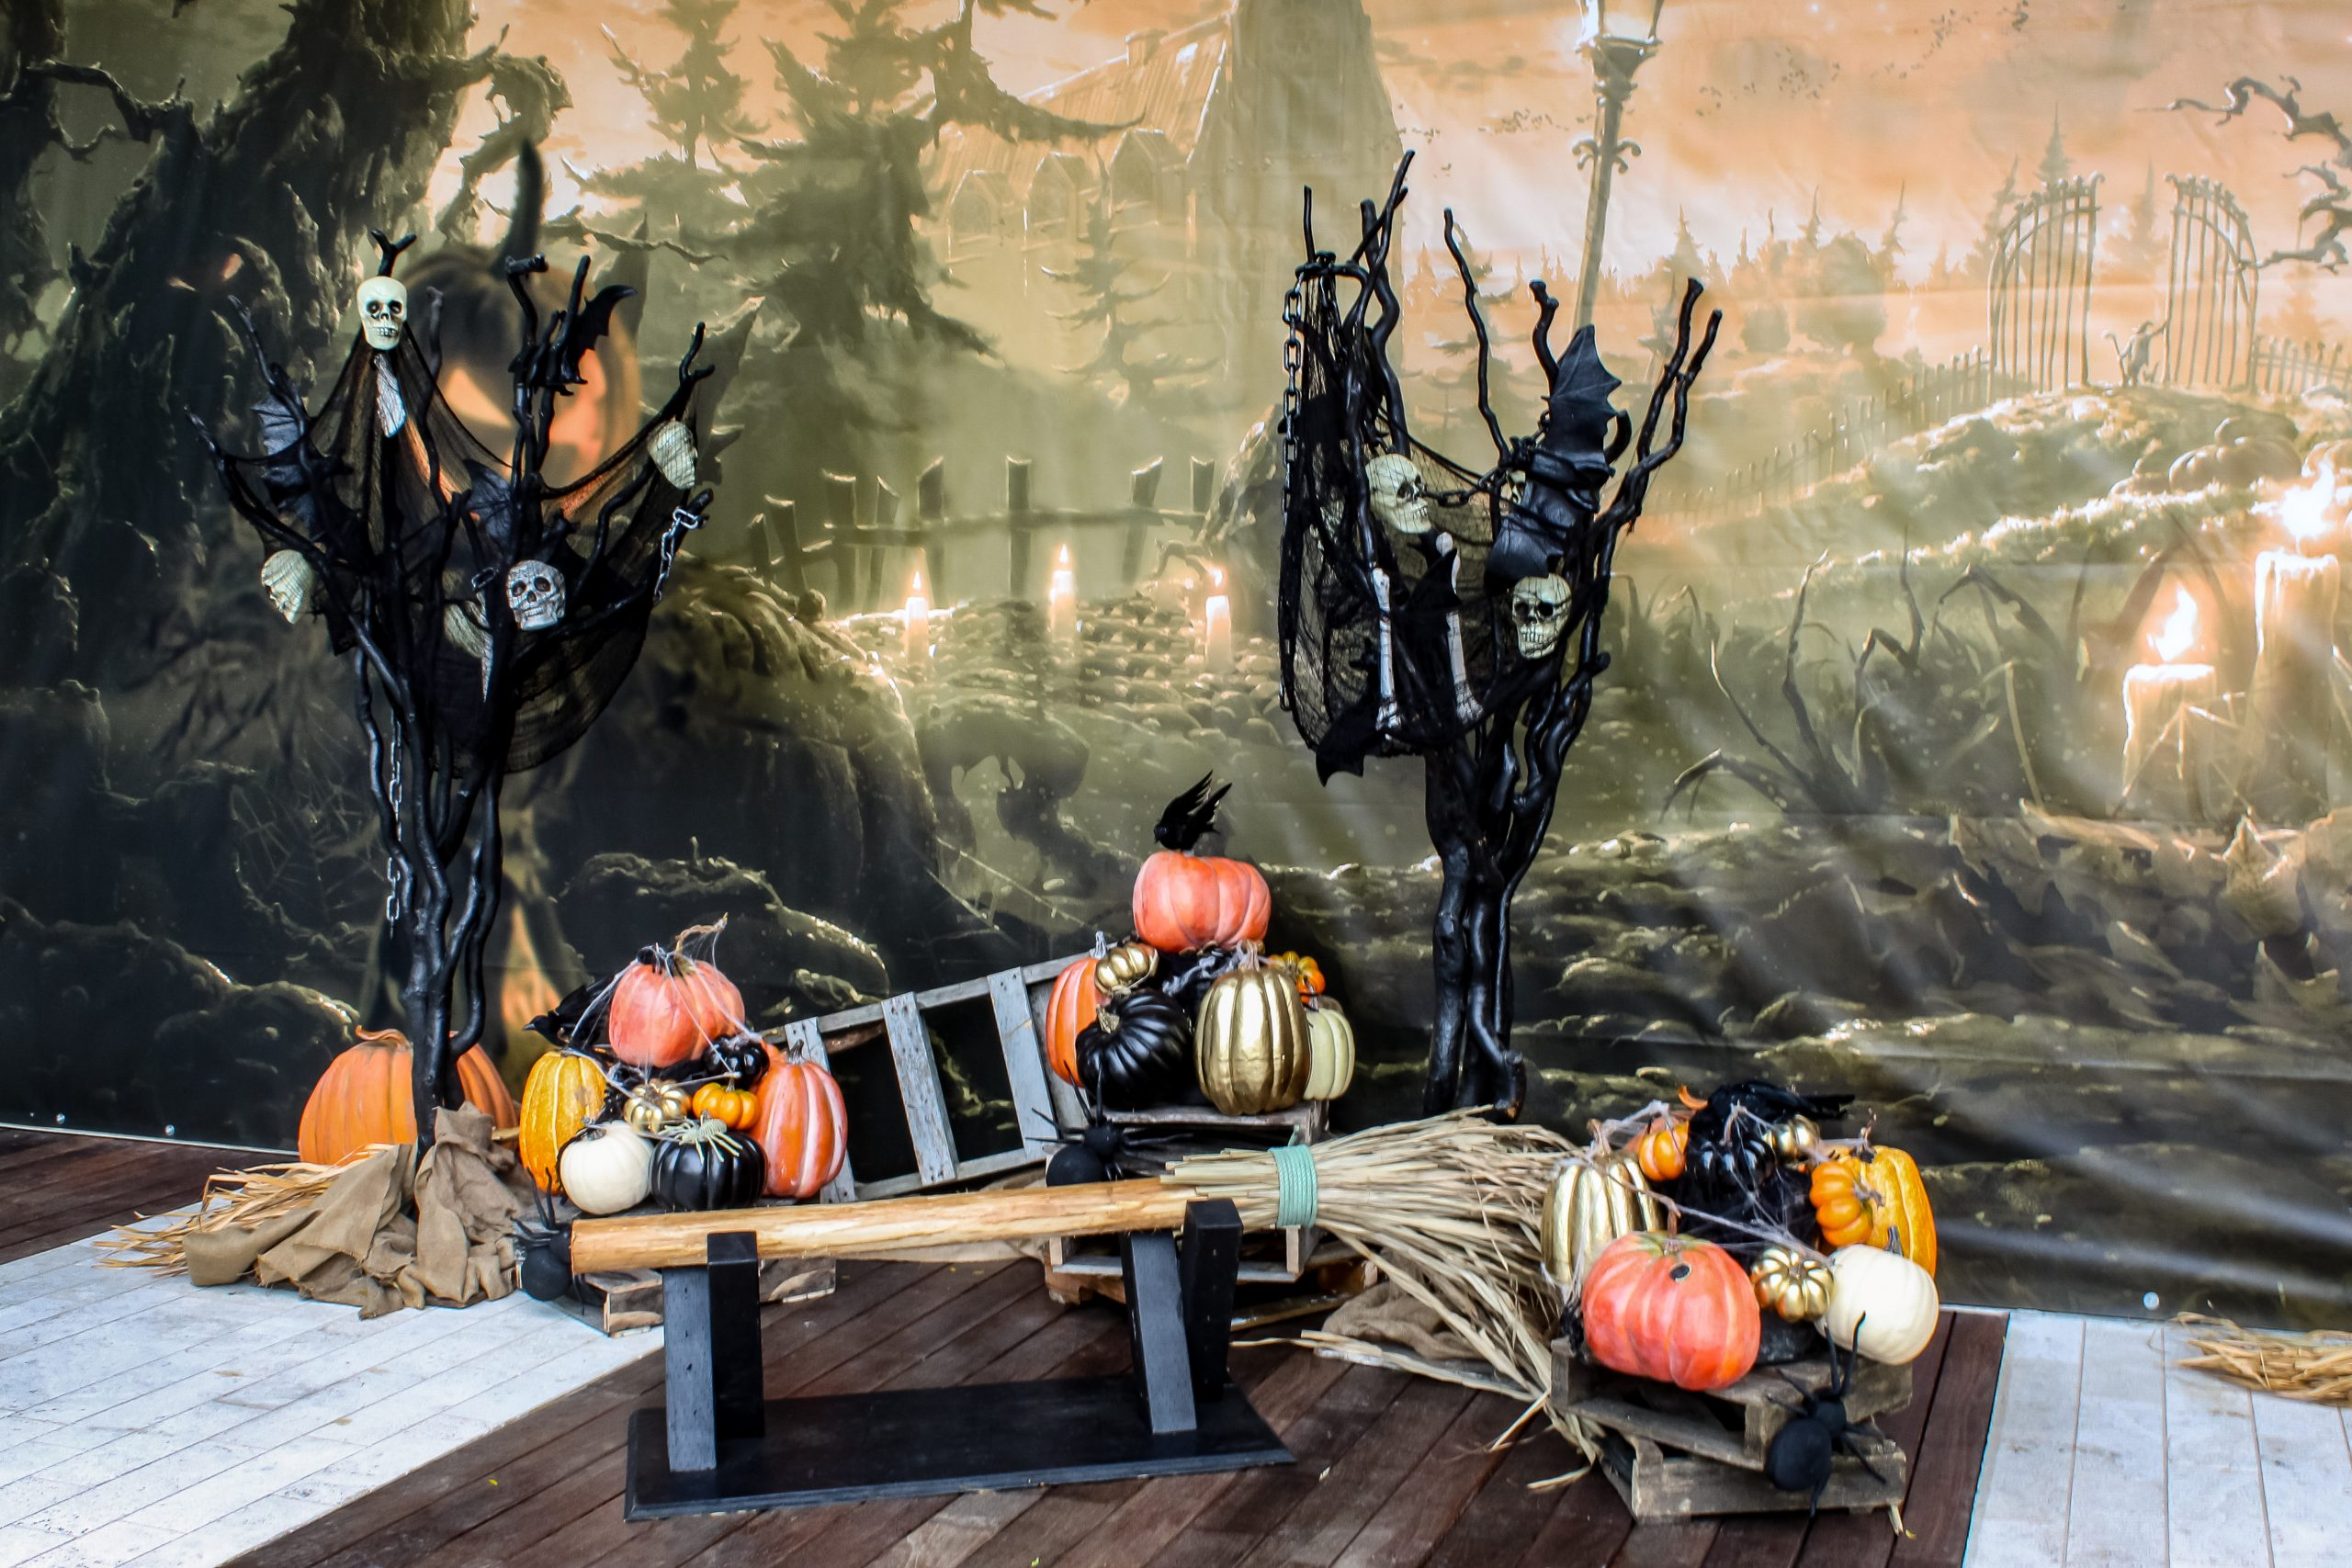 Halloween photo backdrop with oversized witches broom bench, pumpkins and spooky trees